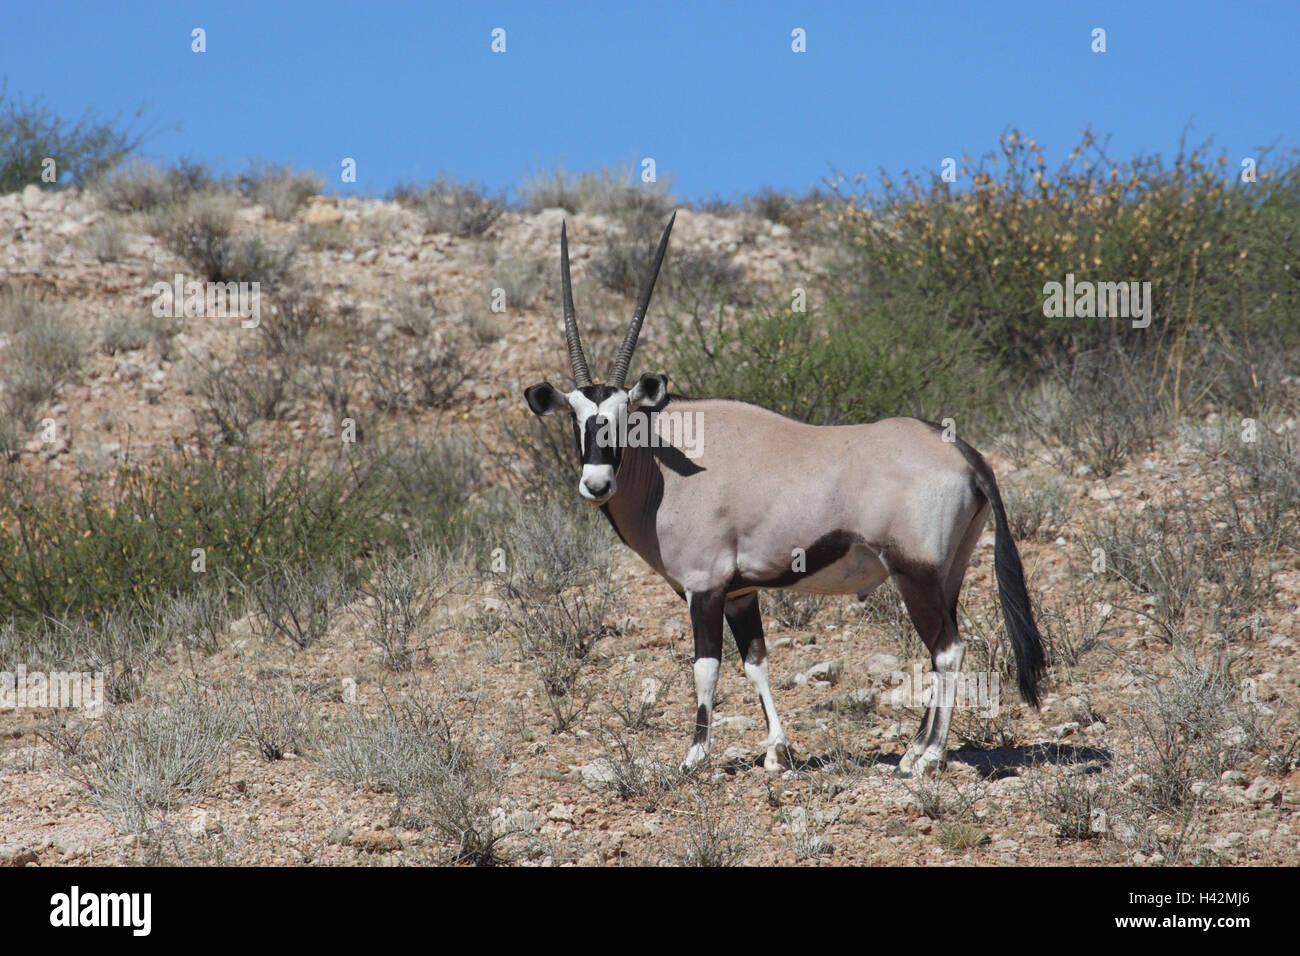 Spit vaulting horse, Oryx, - Stock Image